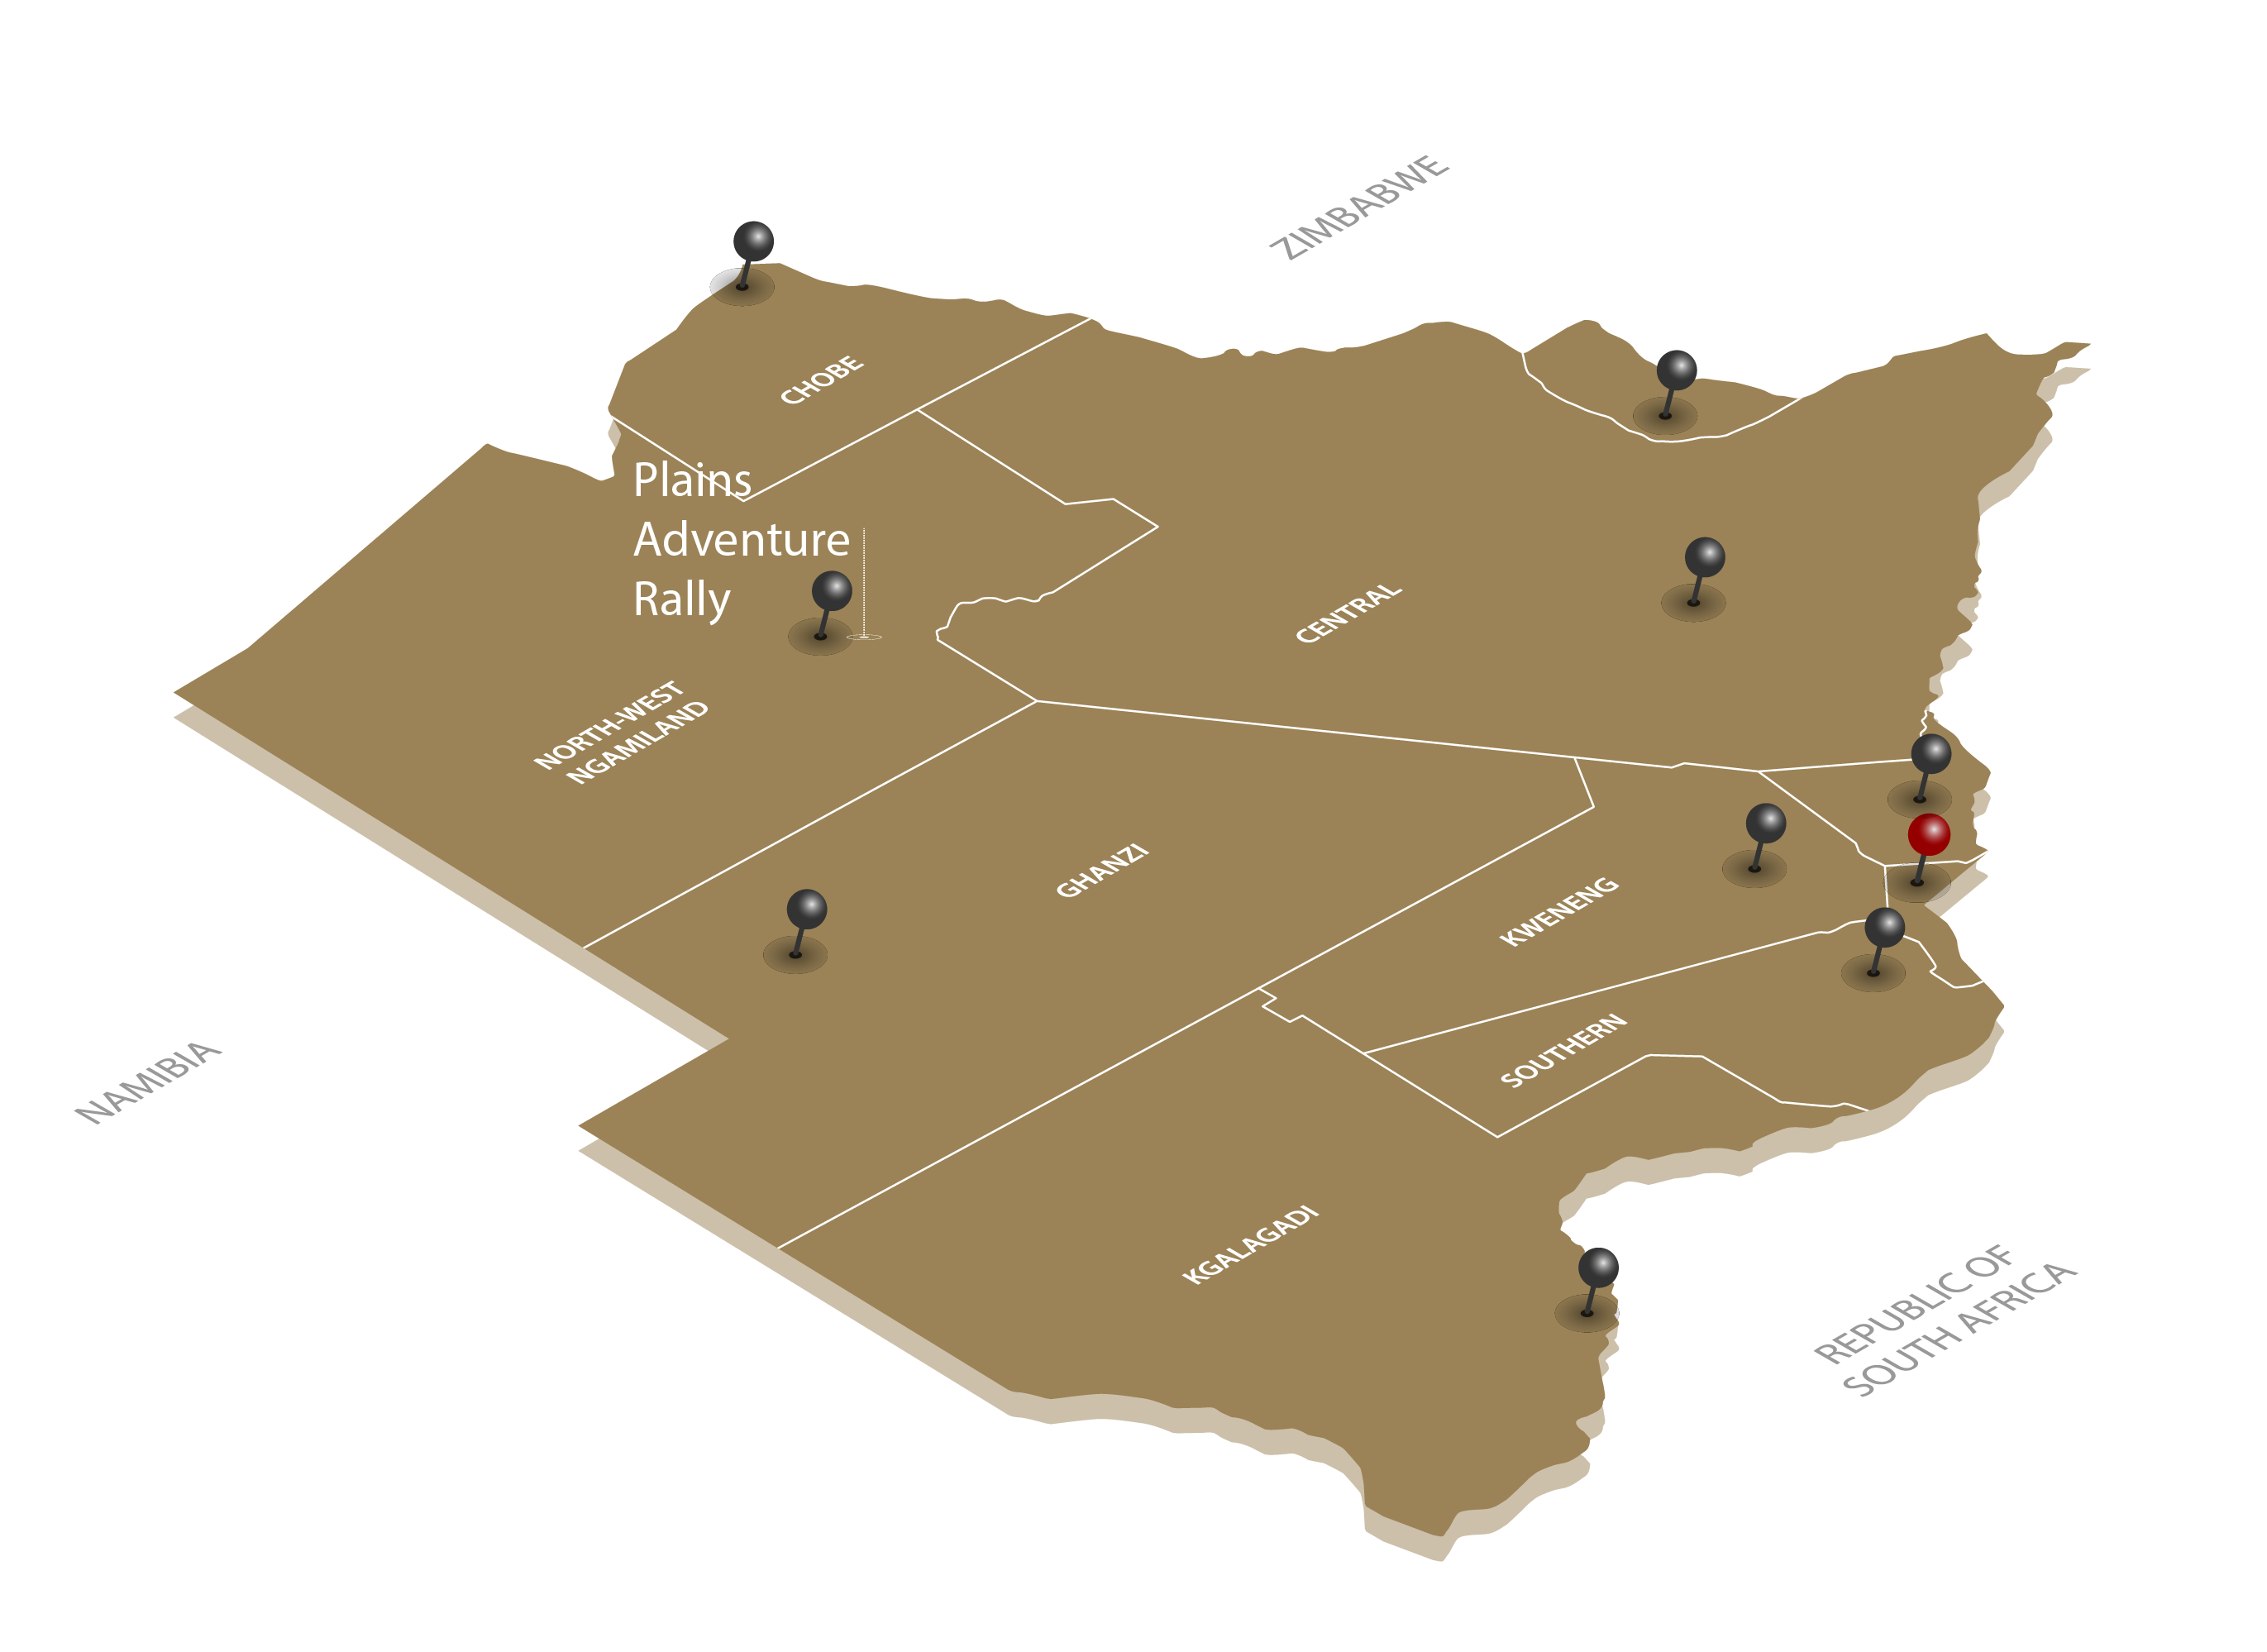 plains adventure rally map